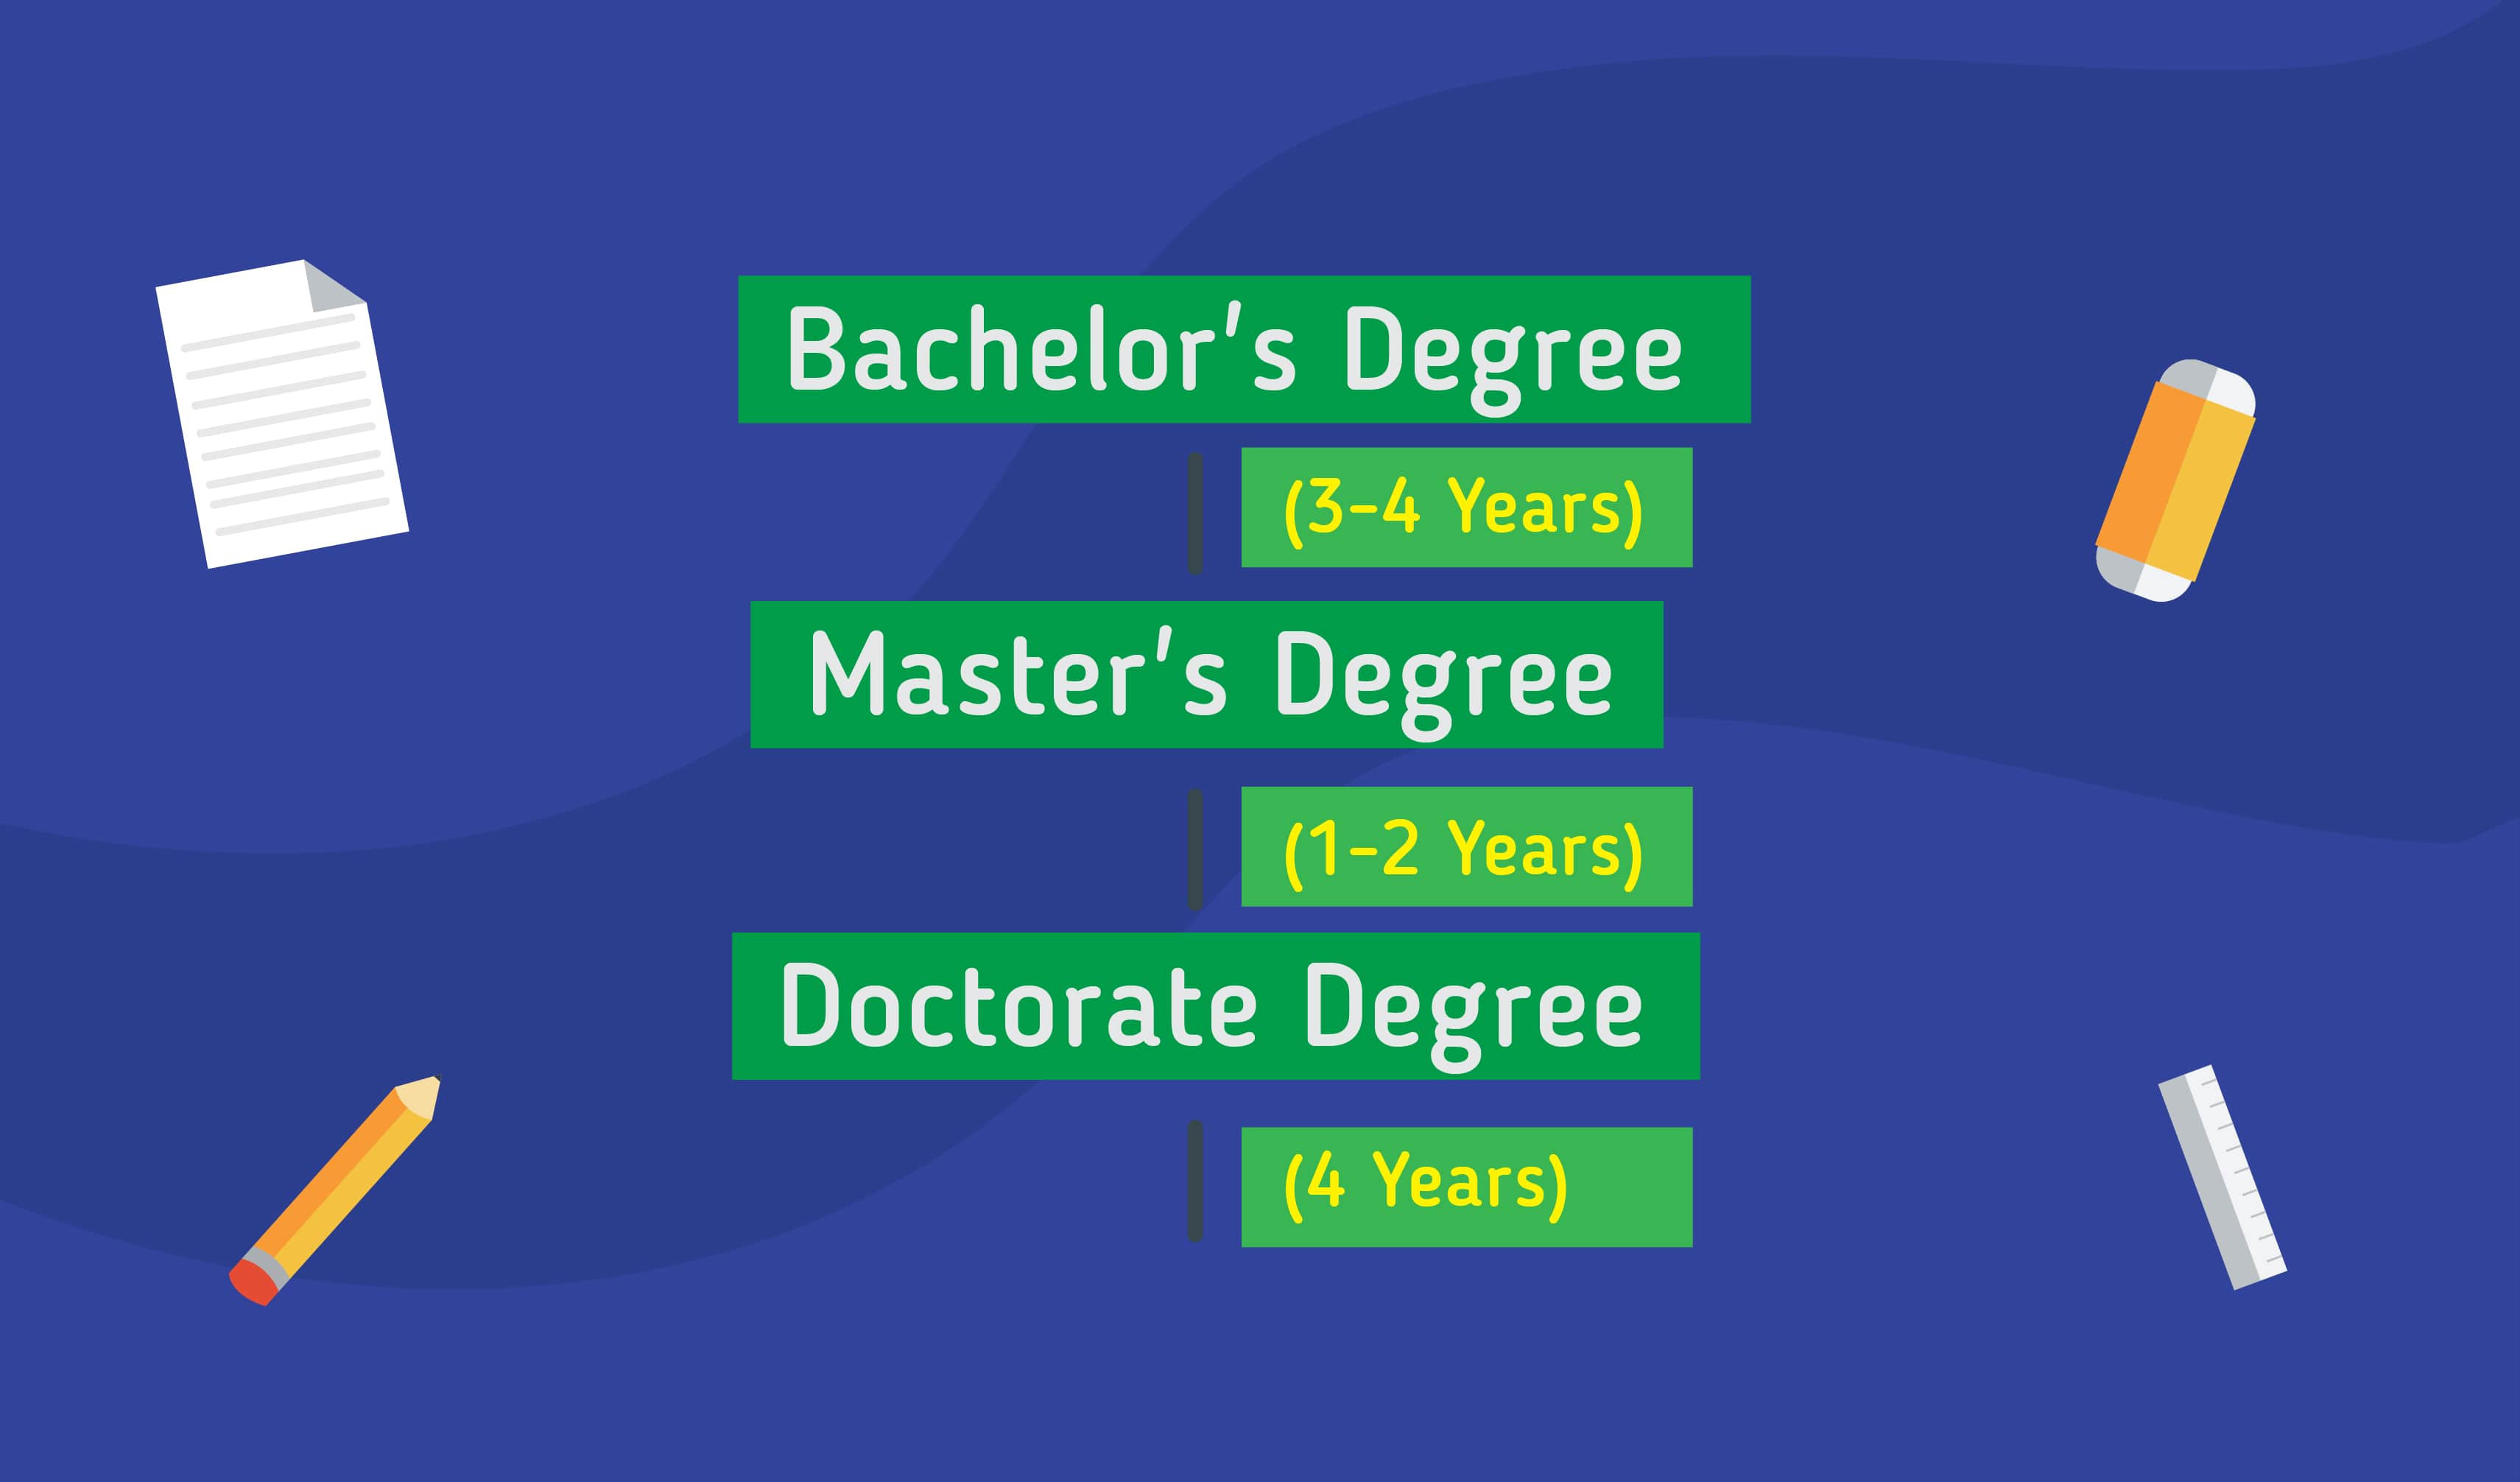 Pathway to study in Ireland: Bachelor's Degree 3-4 years, Master's Degree 1-2 years, Doctorate Degree 4 years)